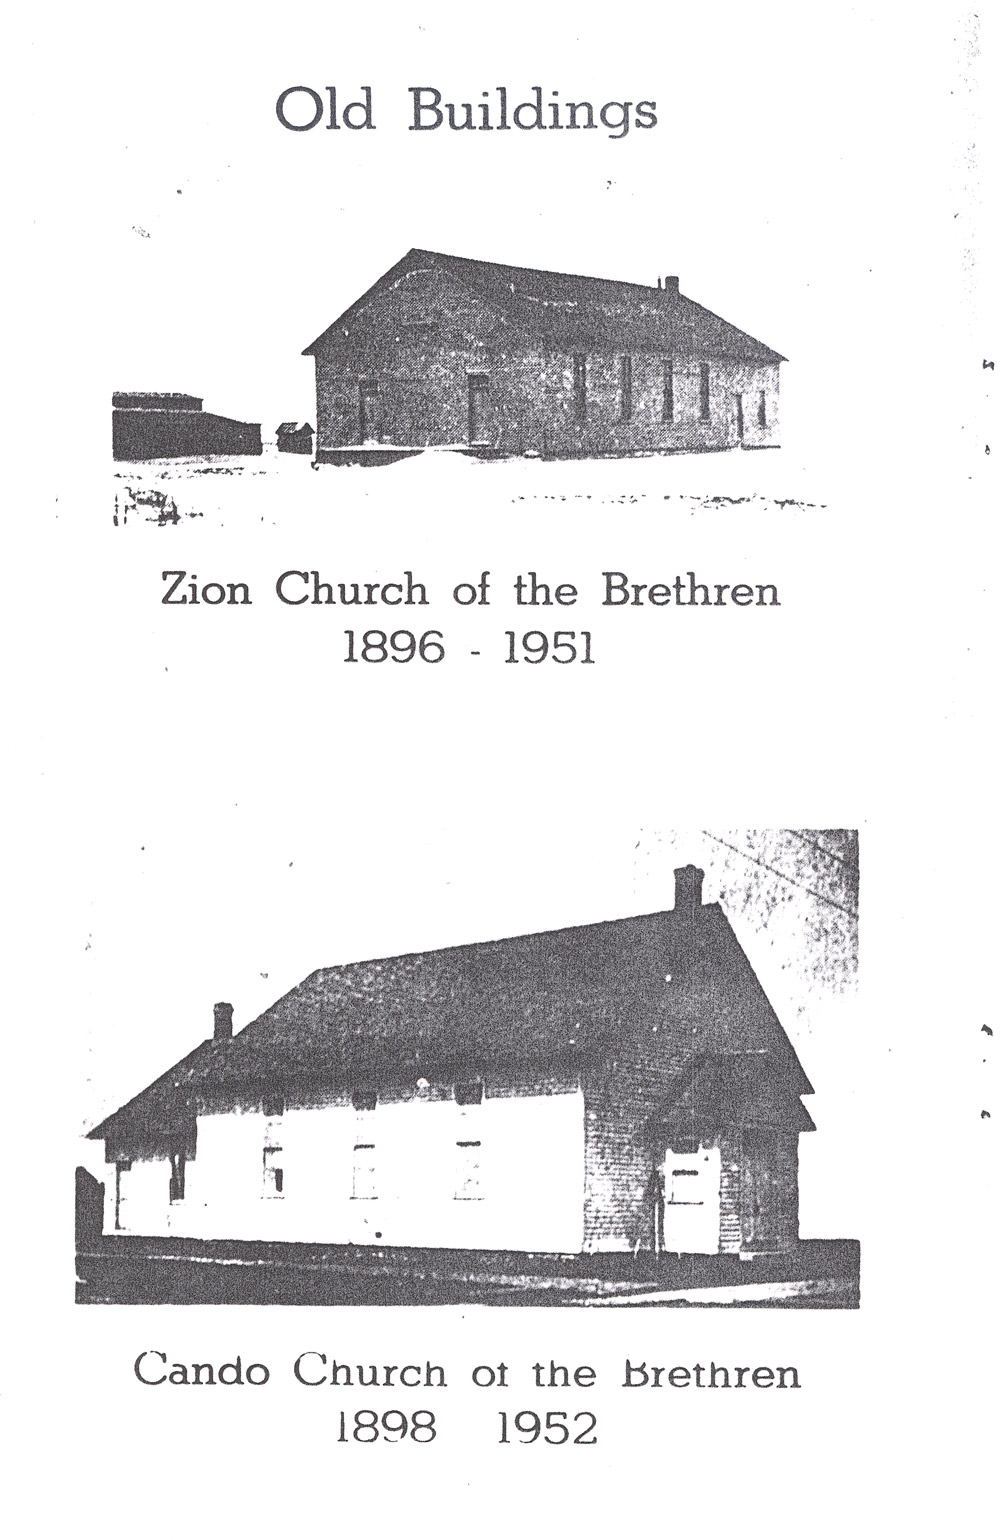 Brethren Churches